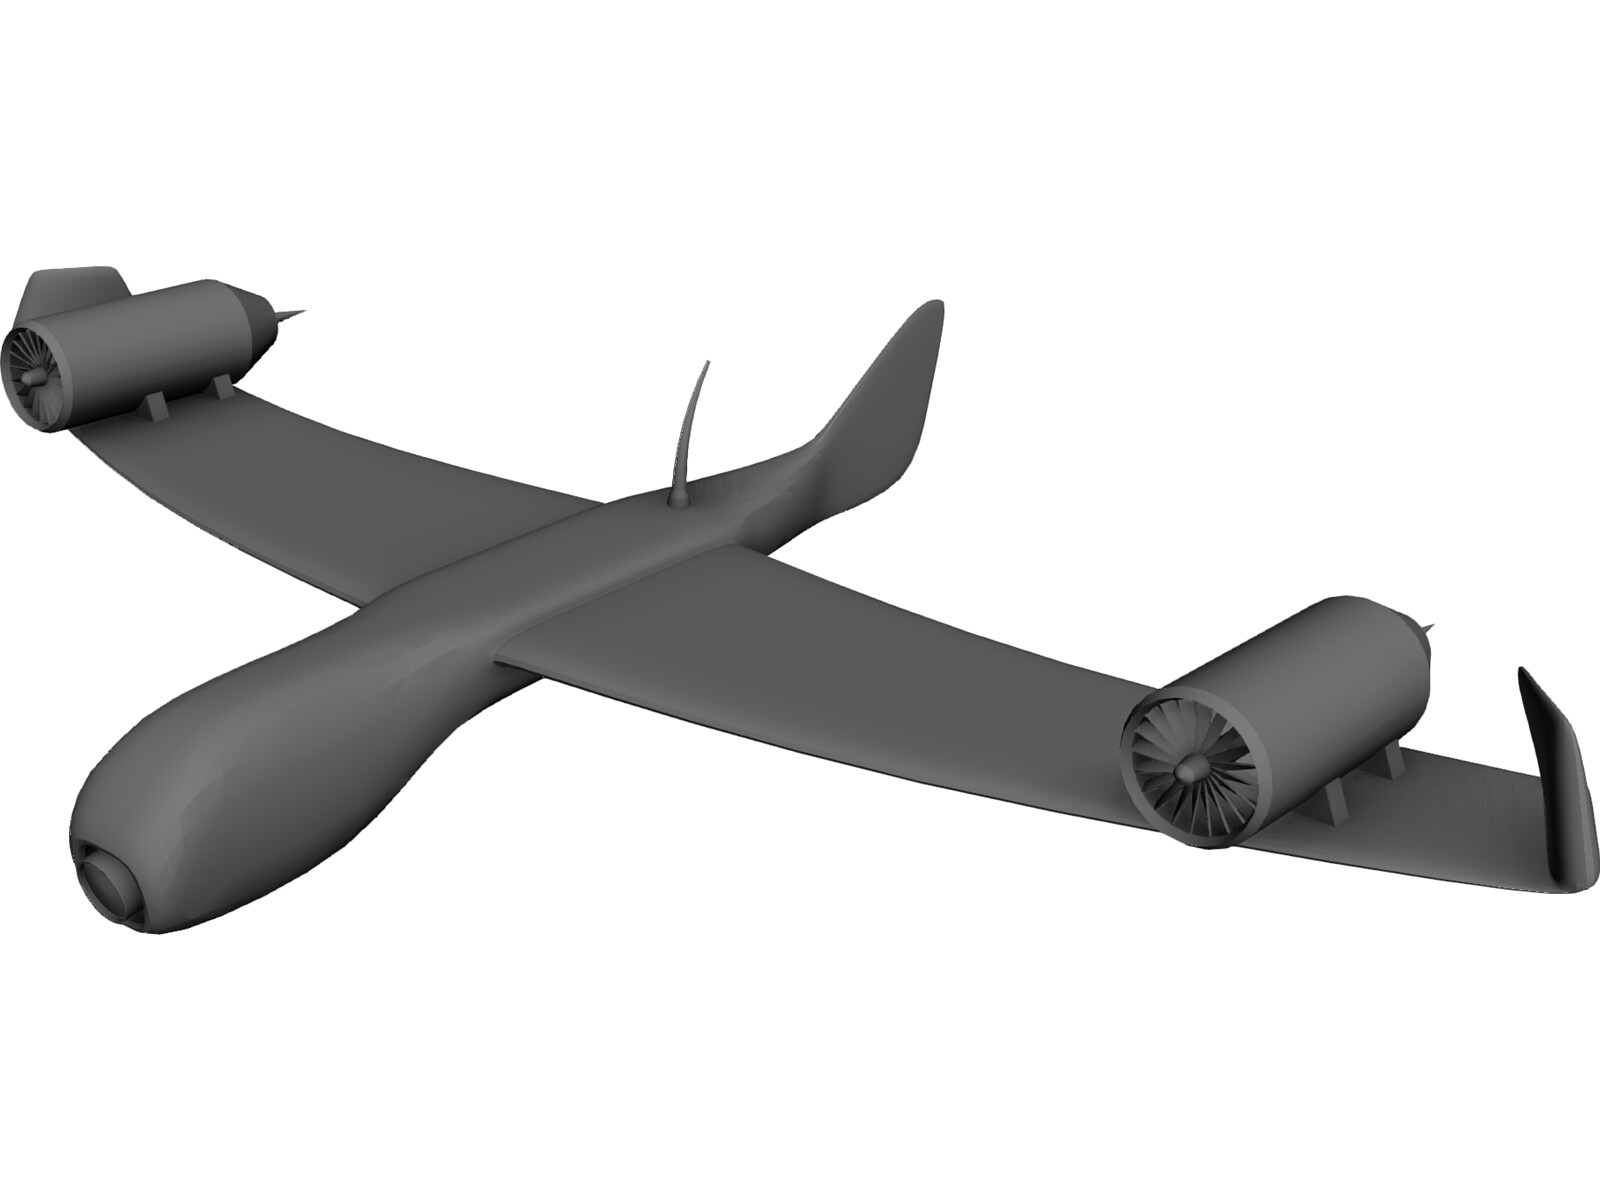 Differential Turbofan UAV Concept 2A7-XP